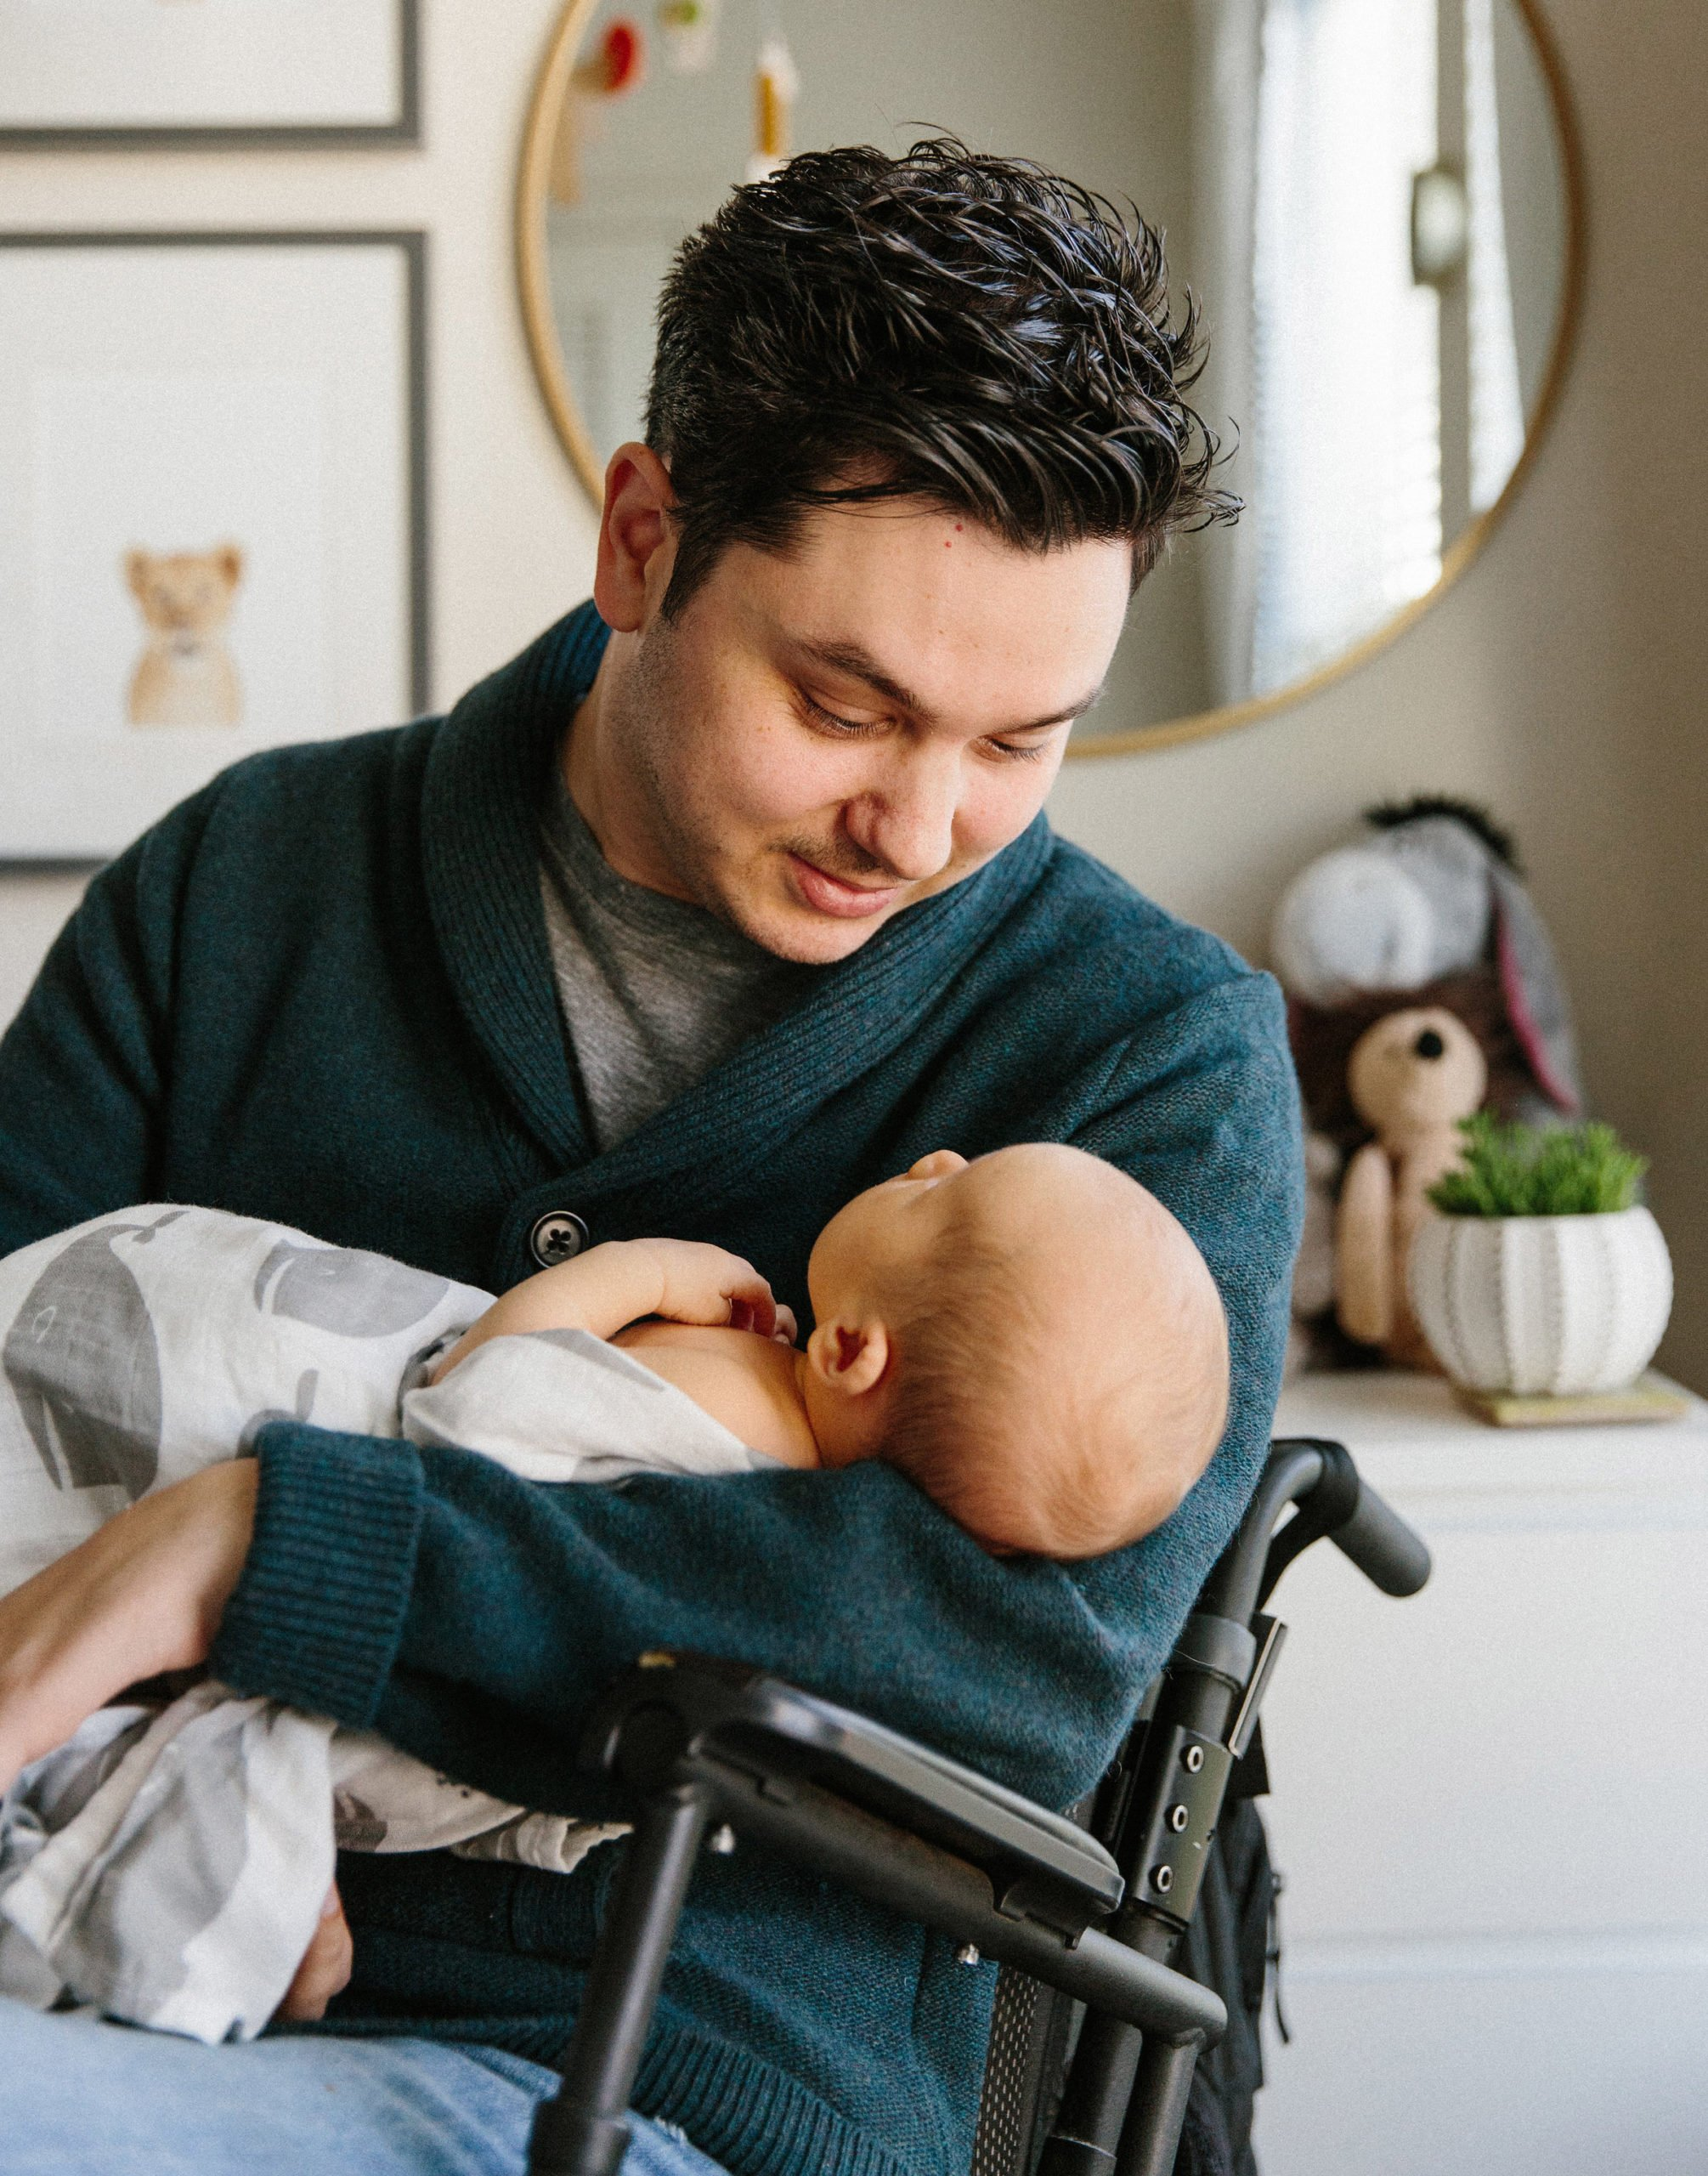 Man in wheelchair, Zack Weinstein, cradles his baby son, Theo, in his arms